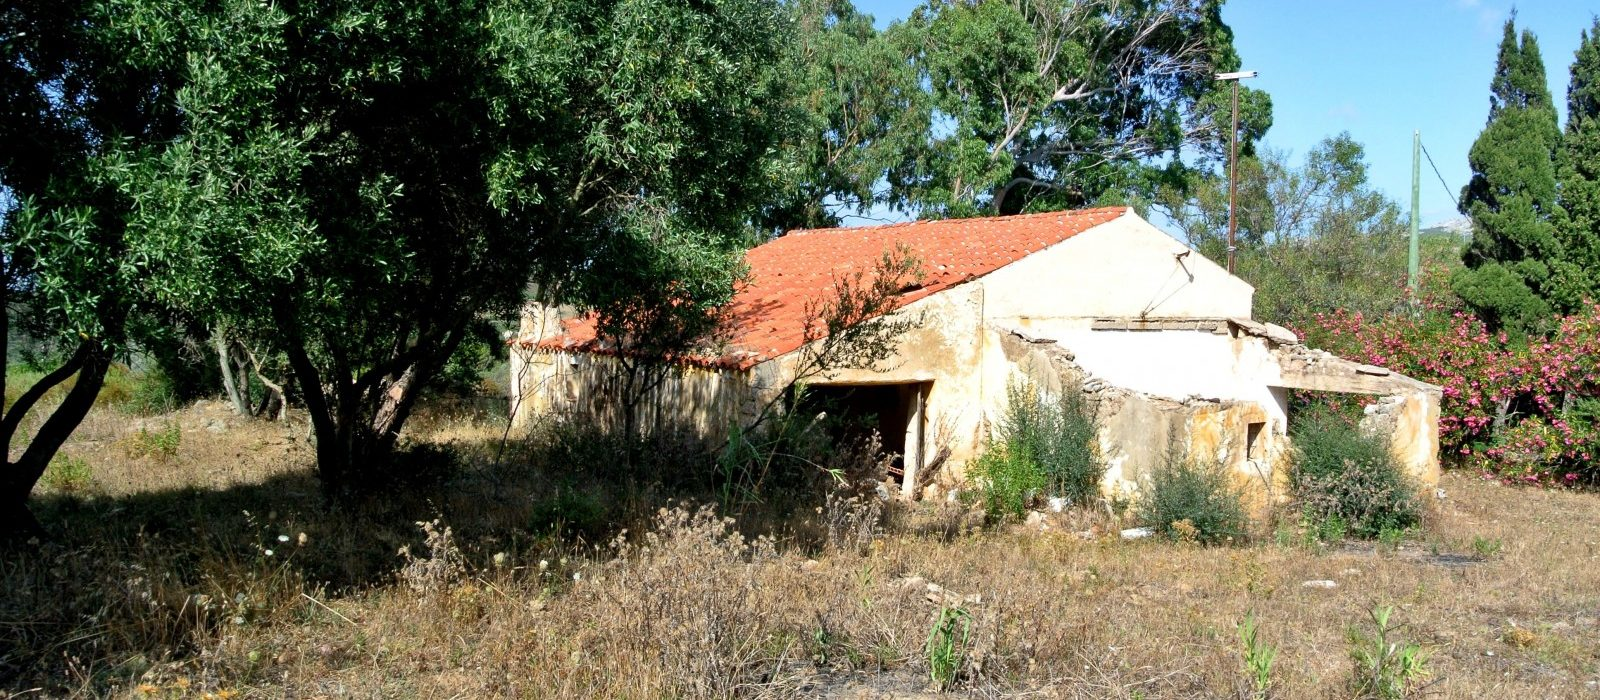 Stazzo in sardinia for sale